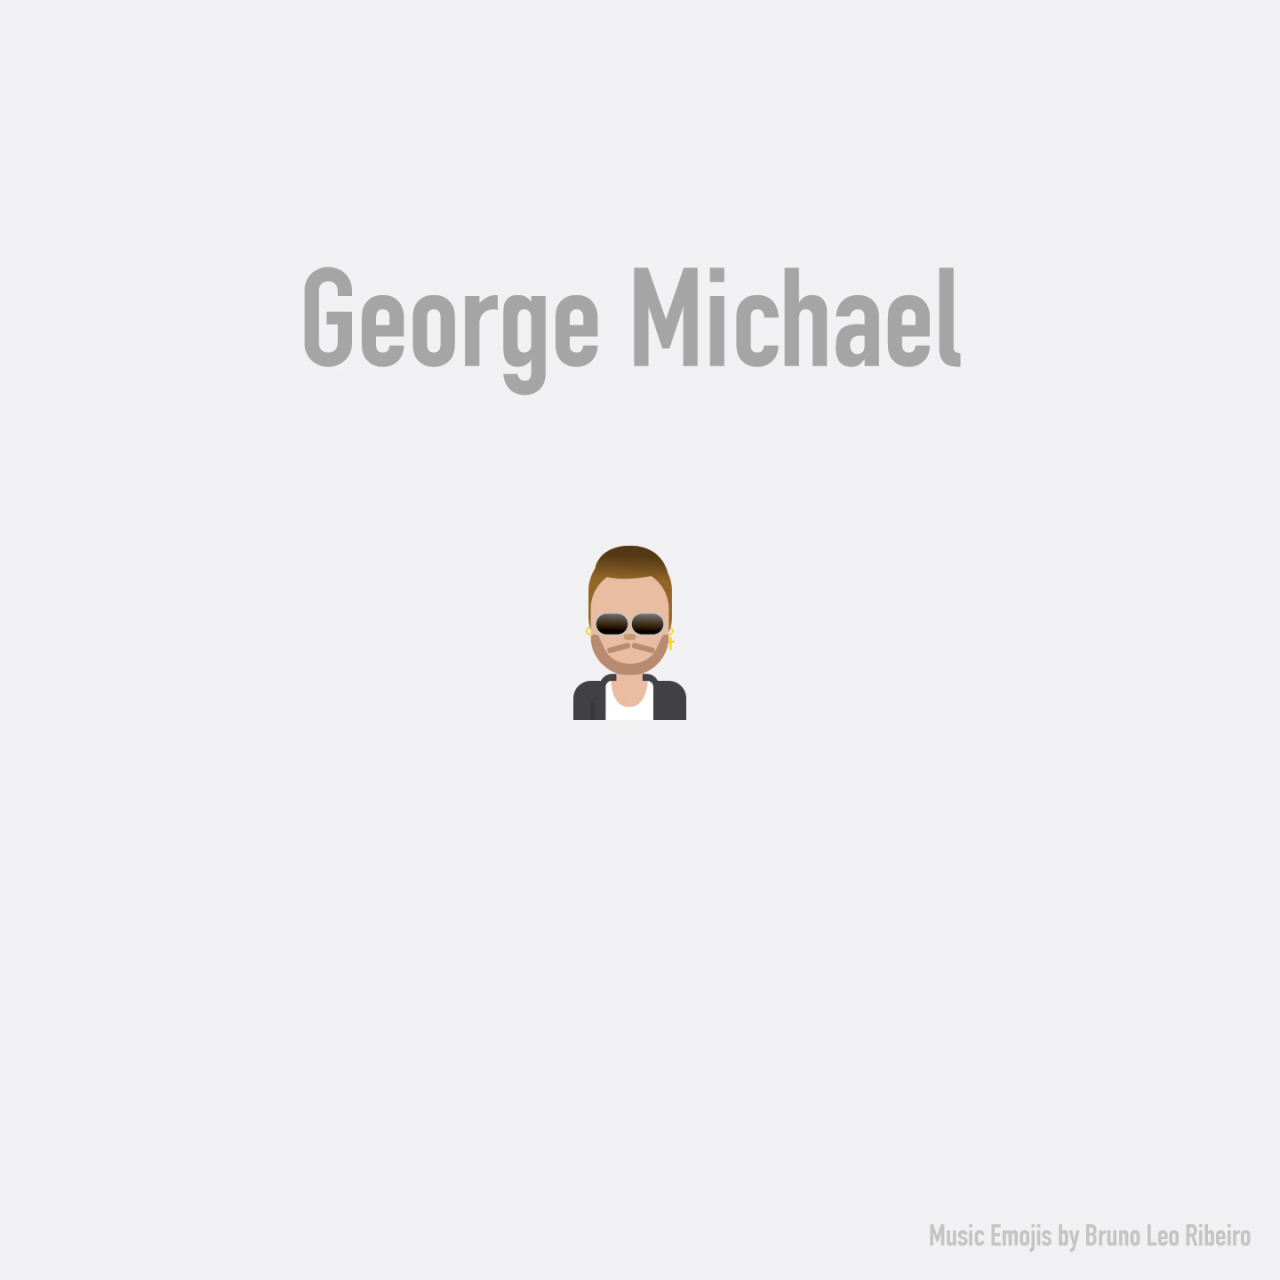 George Michael emoji